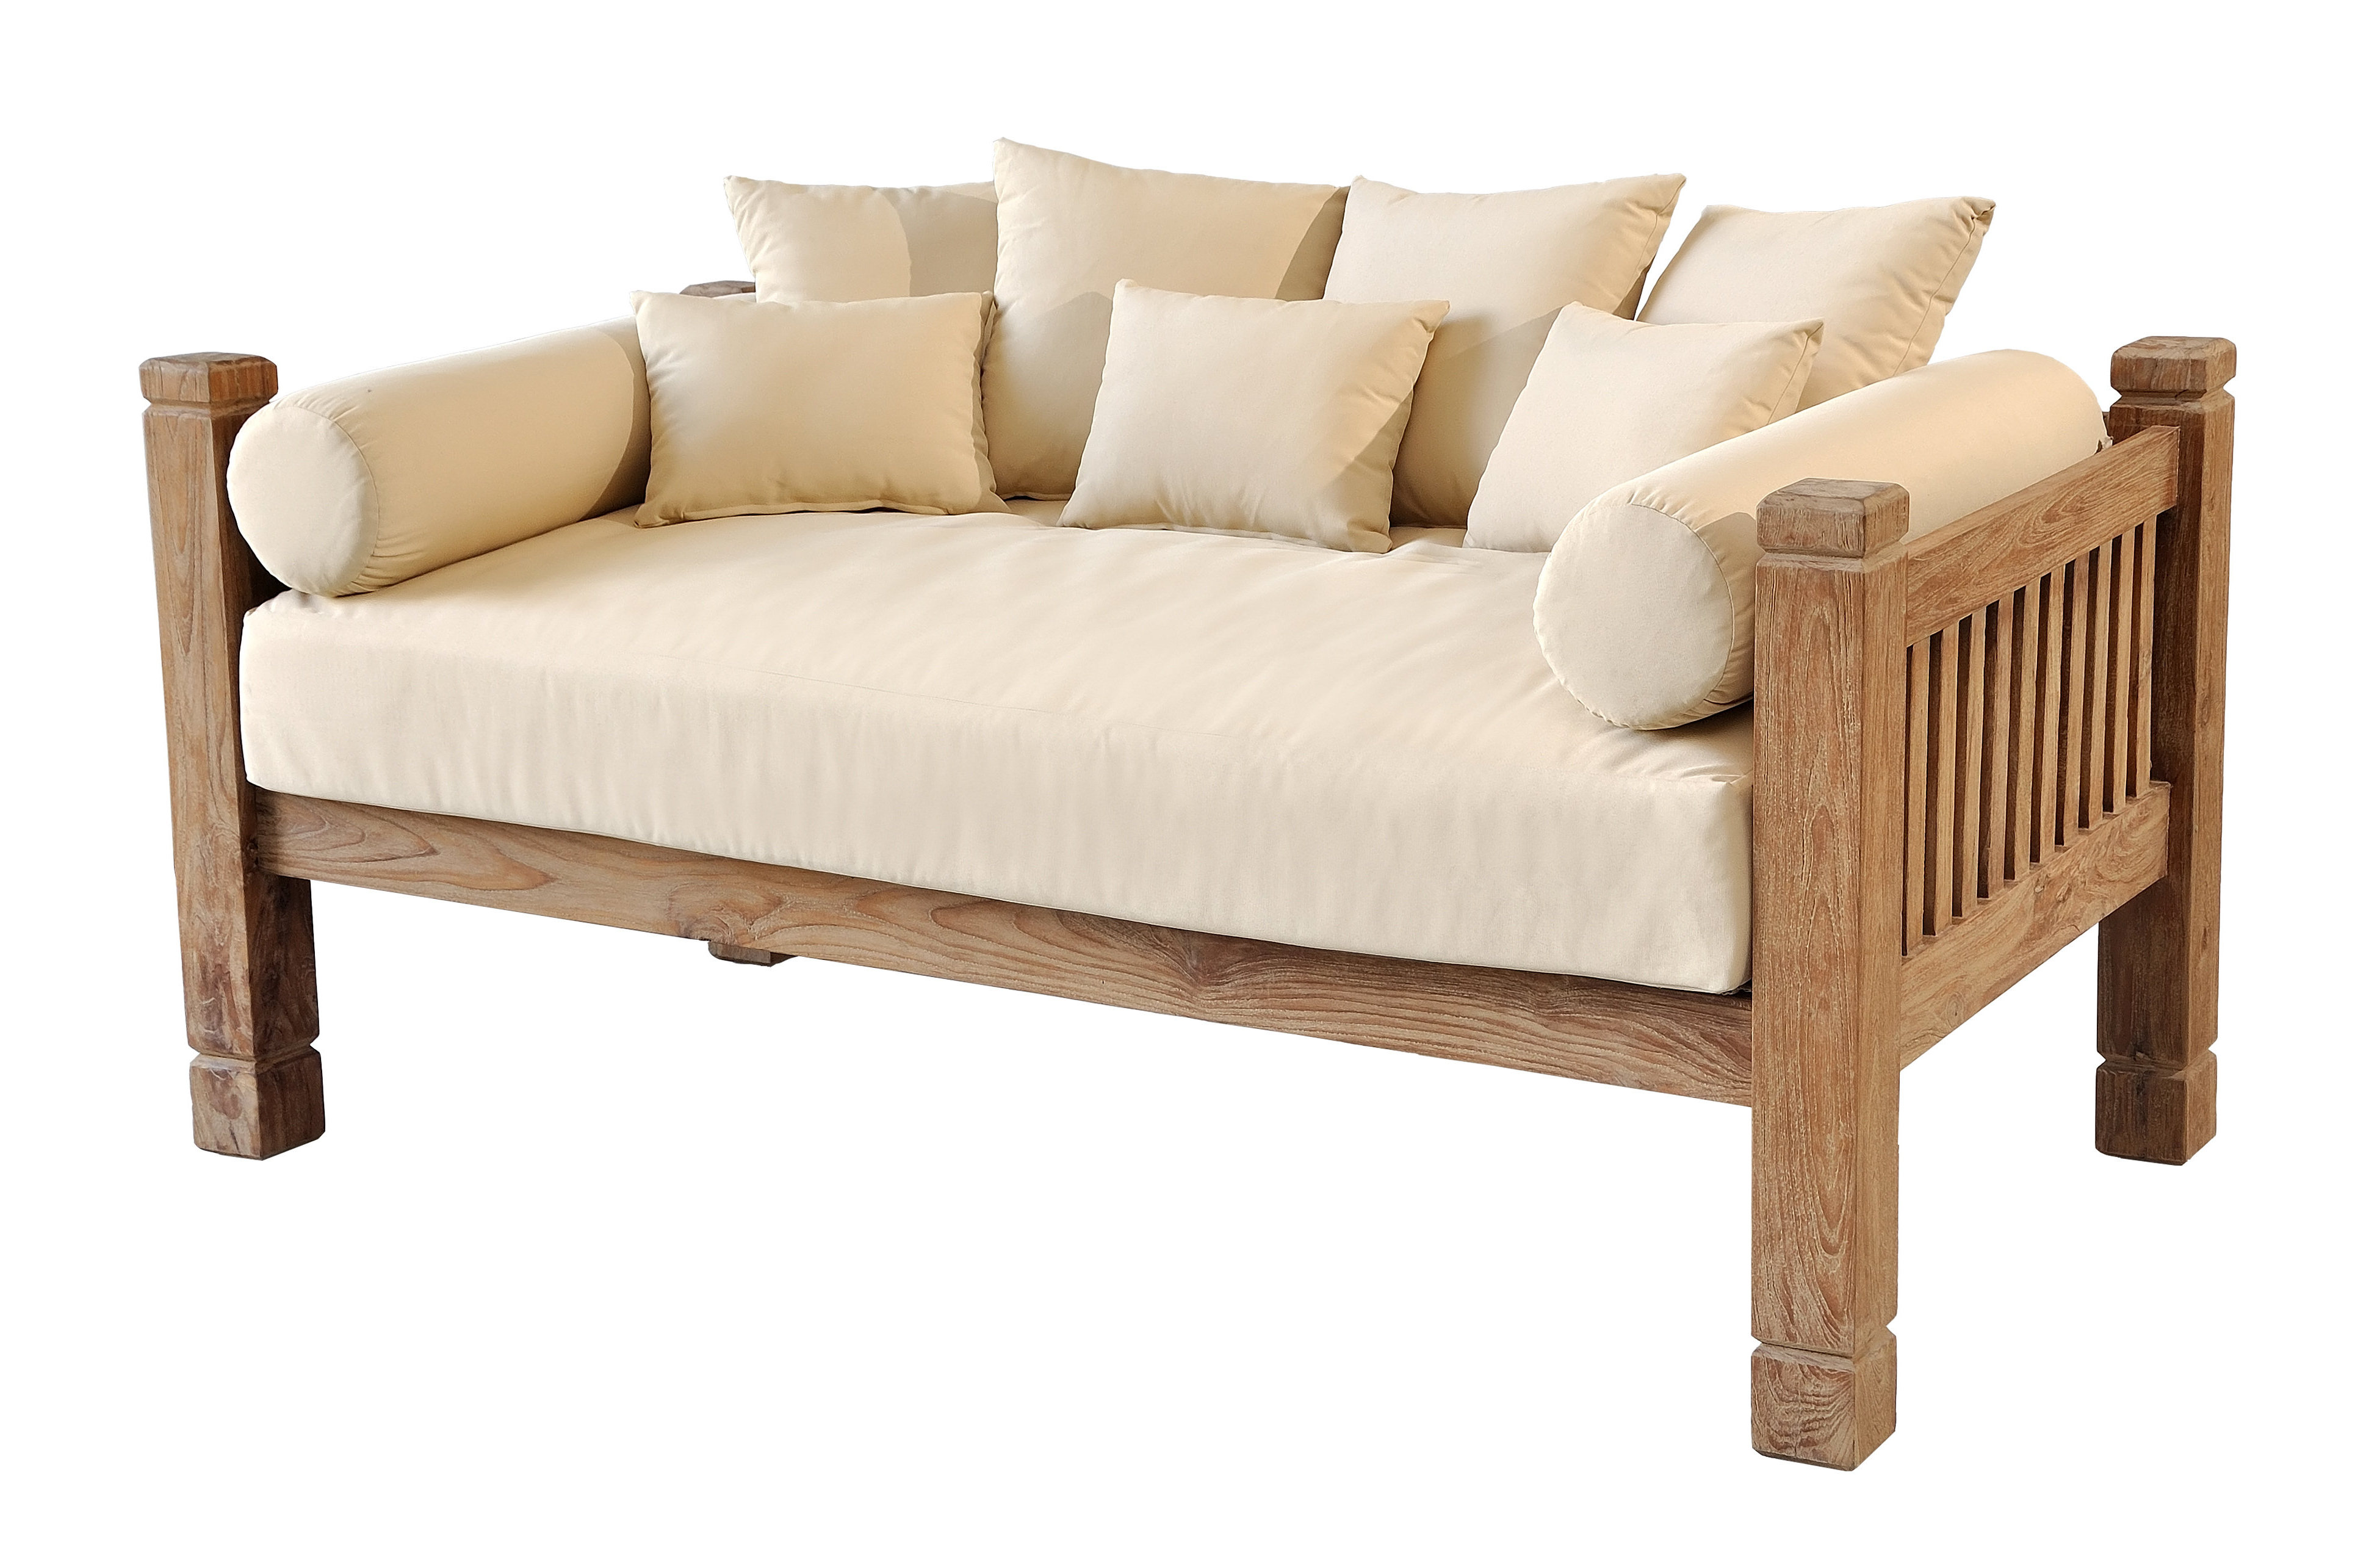 Patio Daybeds With Cushions Intended For Widely Used Perine Teak Patio Daybed With Cushions (View 16 of 20)